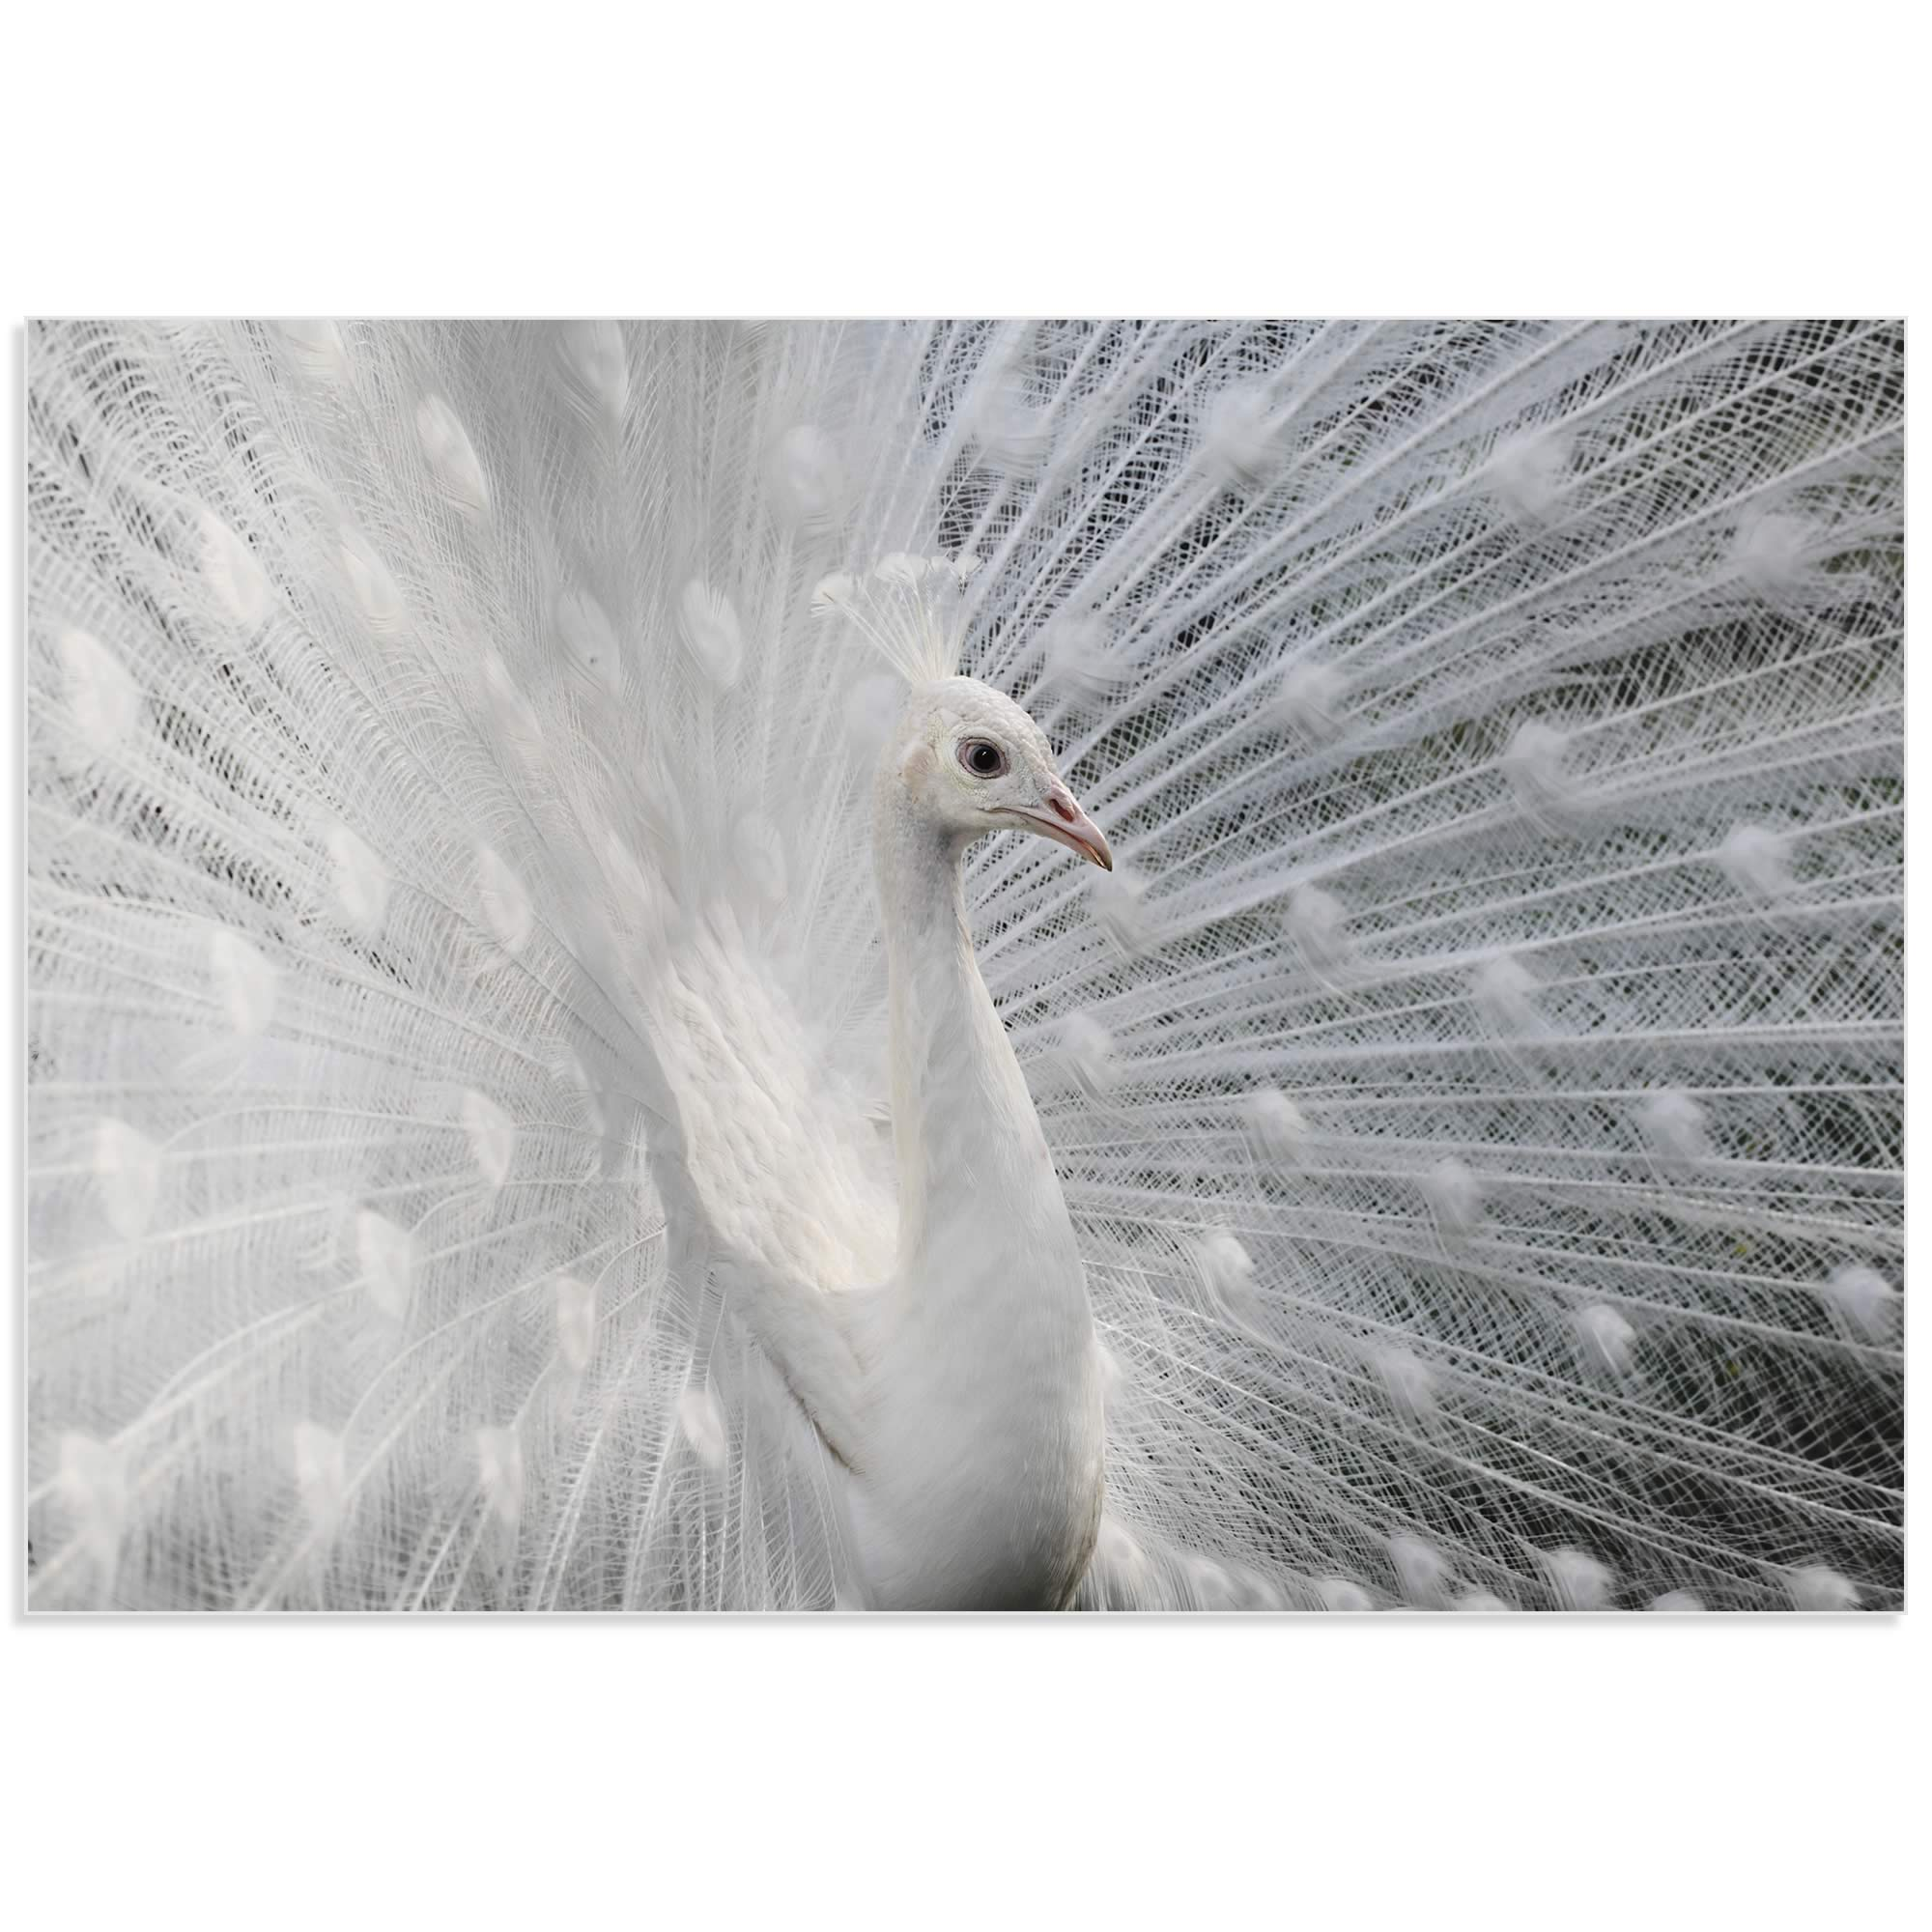 Snow White Peacock by Victoria Ivanova - White Peacock Art on Metal or Acrylic - Alternate View 2